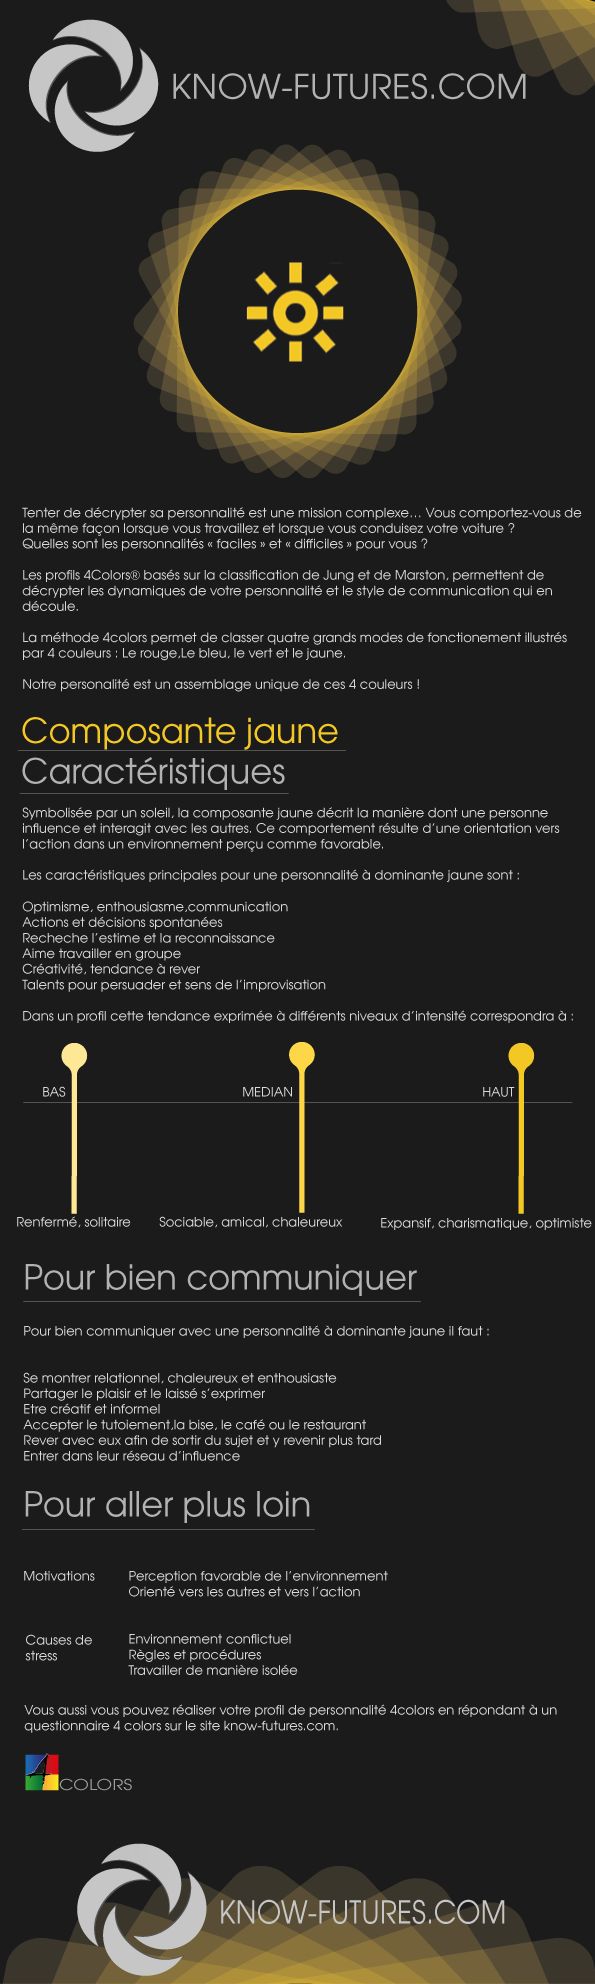 composante jaune 4colors